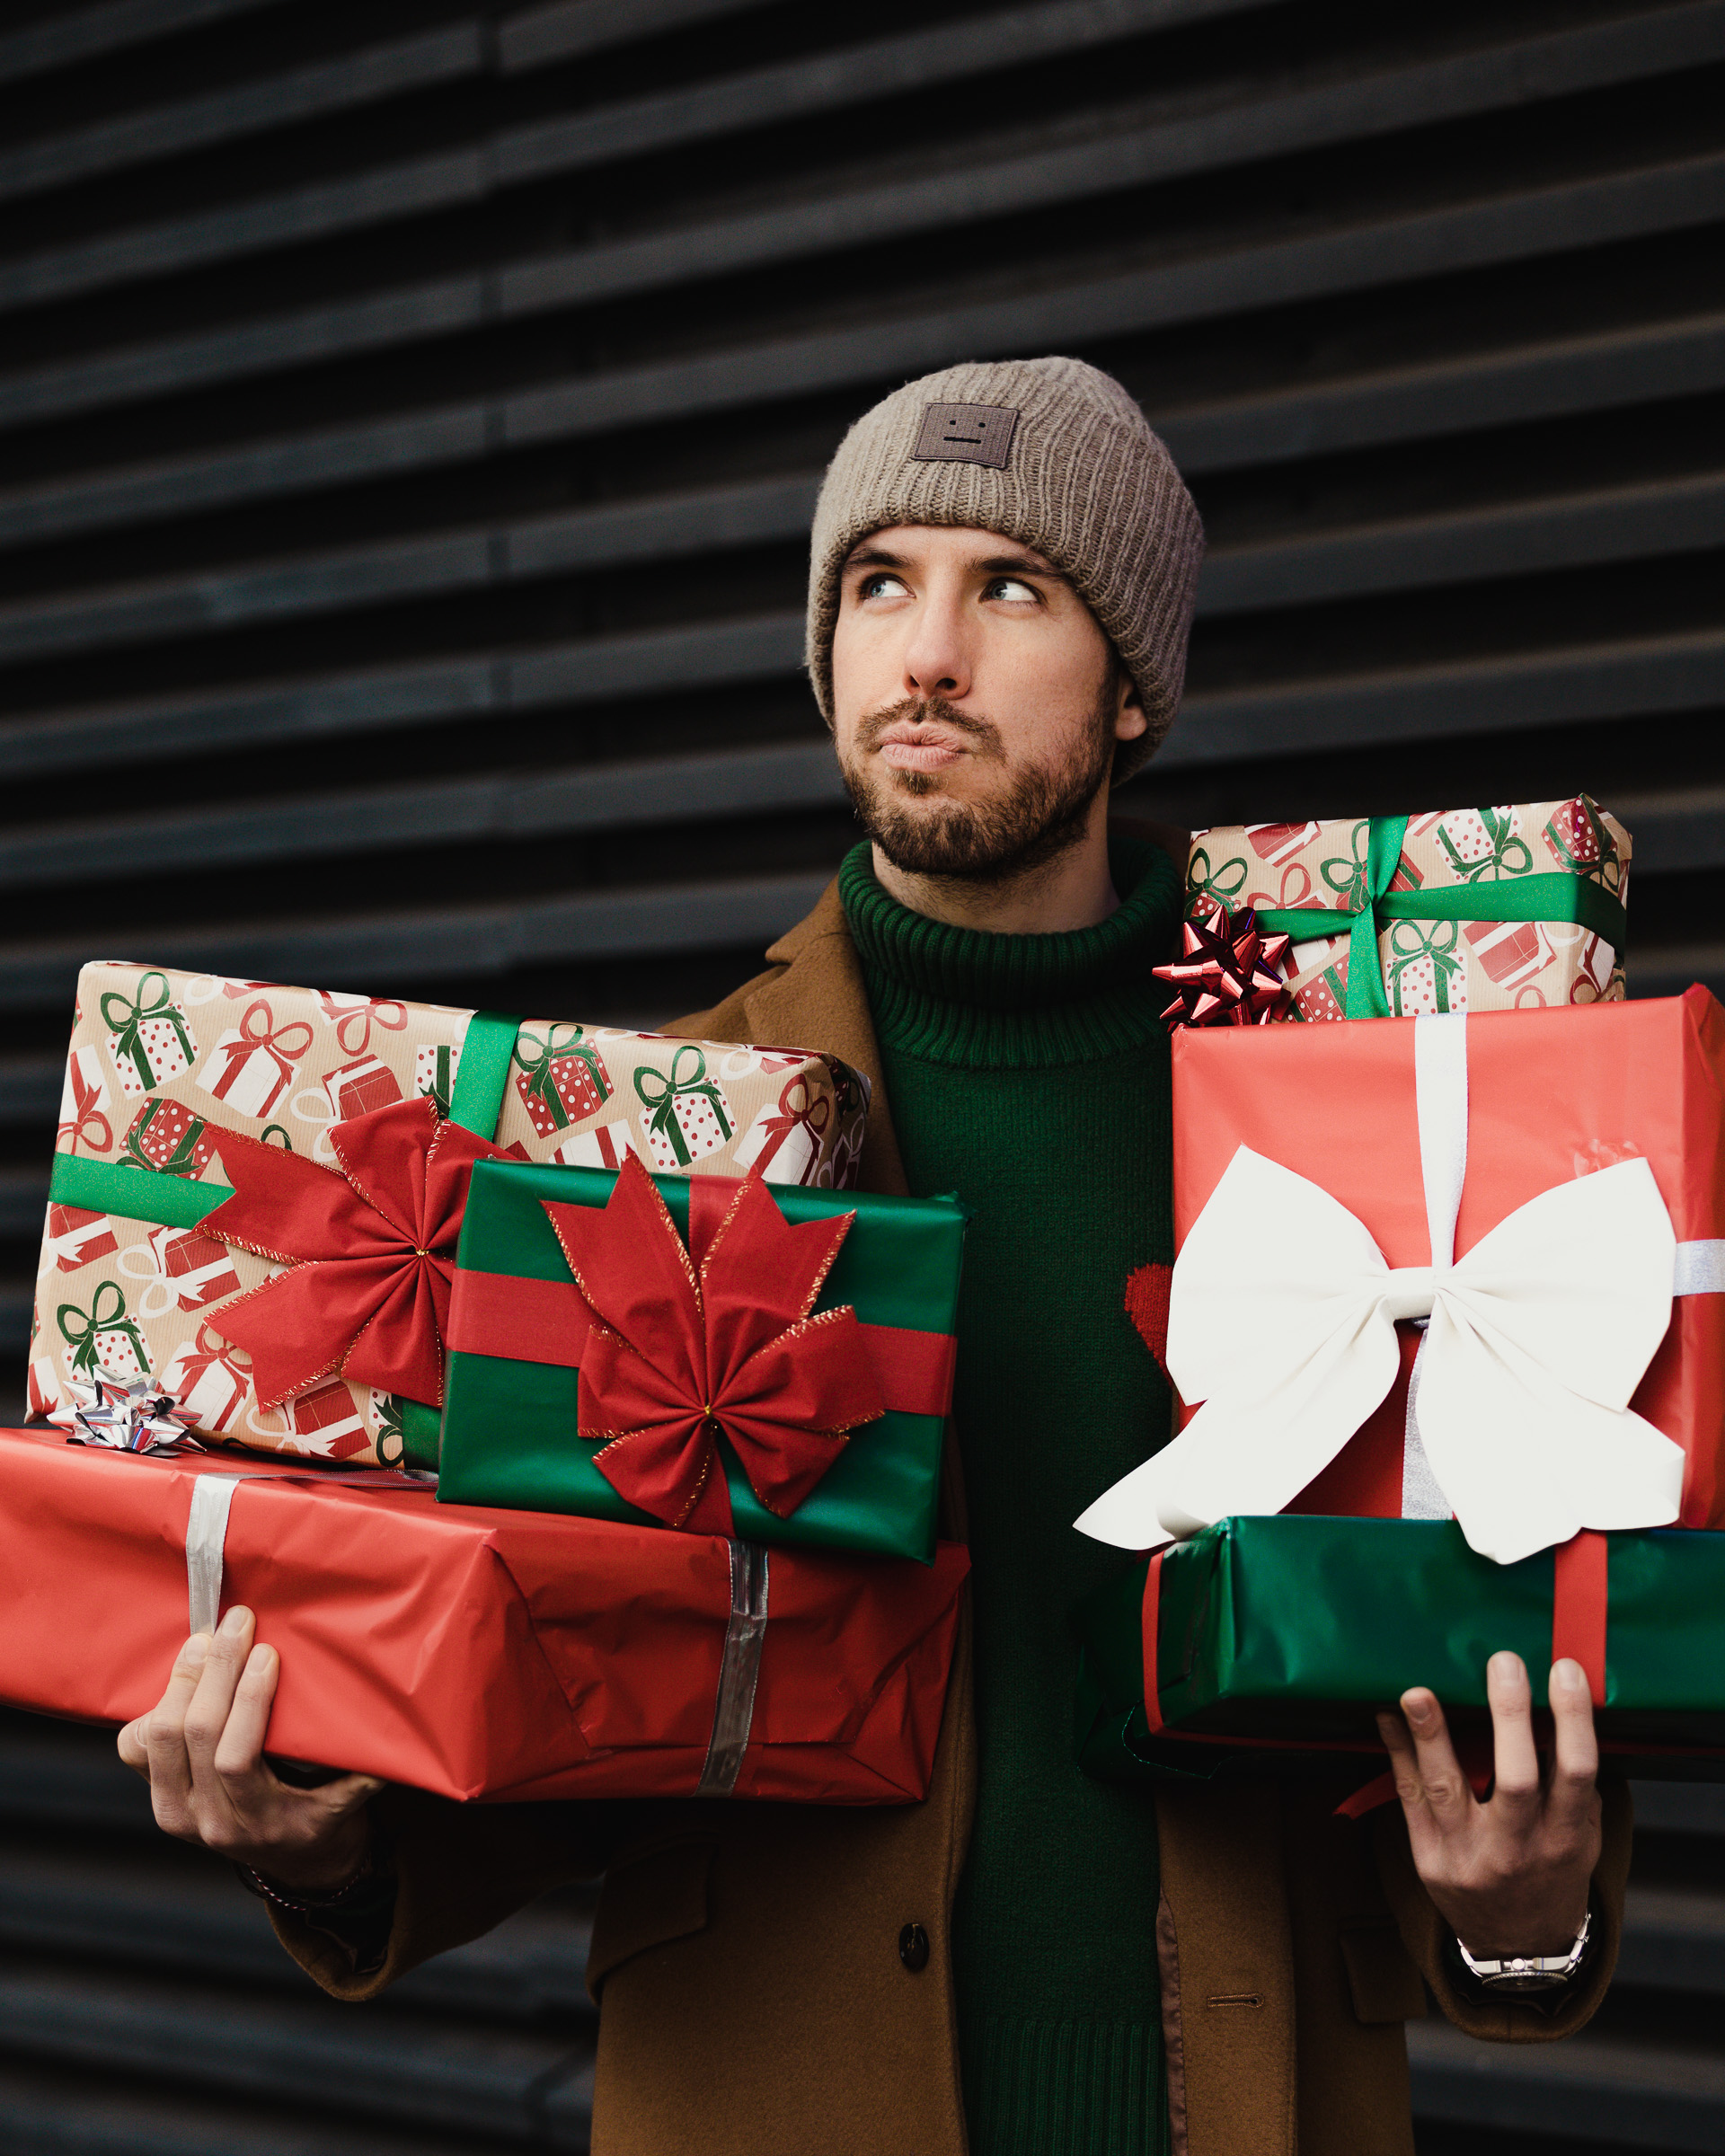 X_Mas gifts Sebastian Schmidt by Rose Time Photography